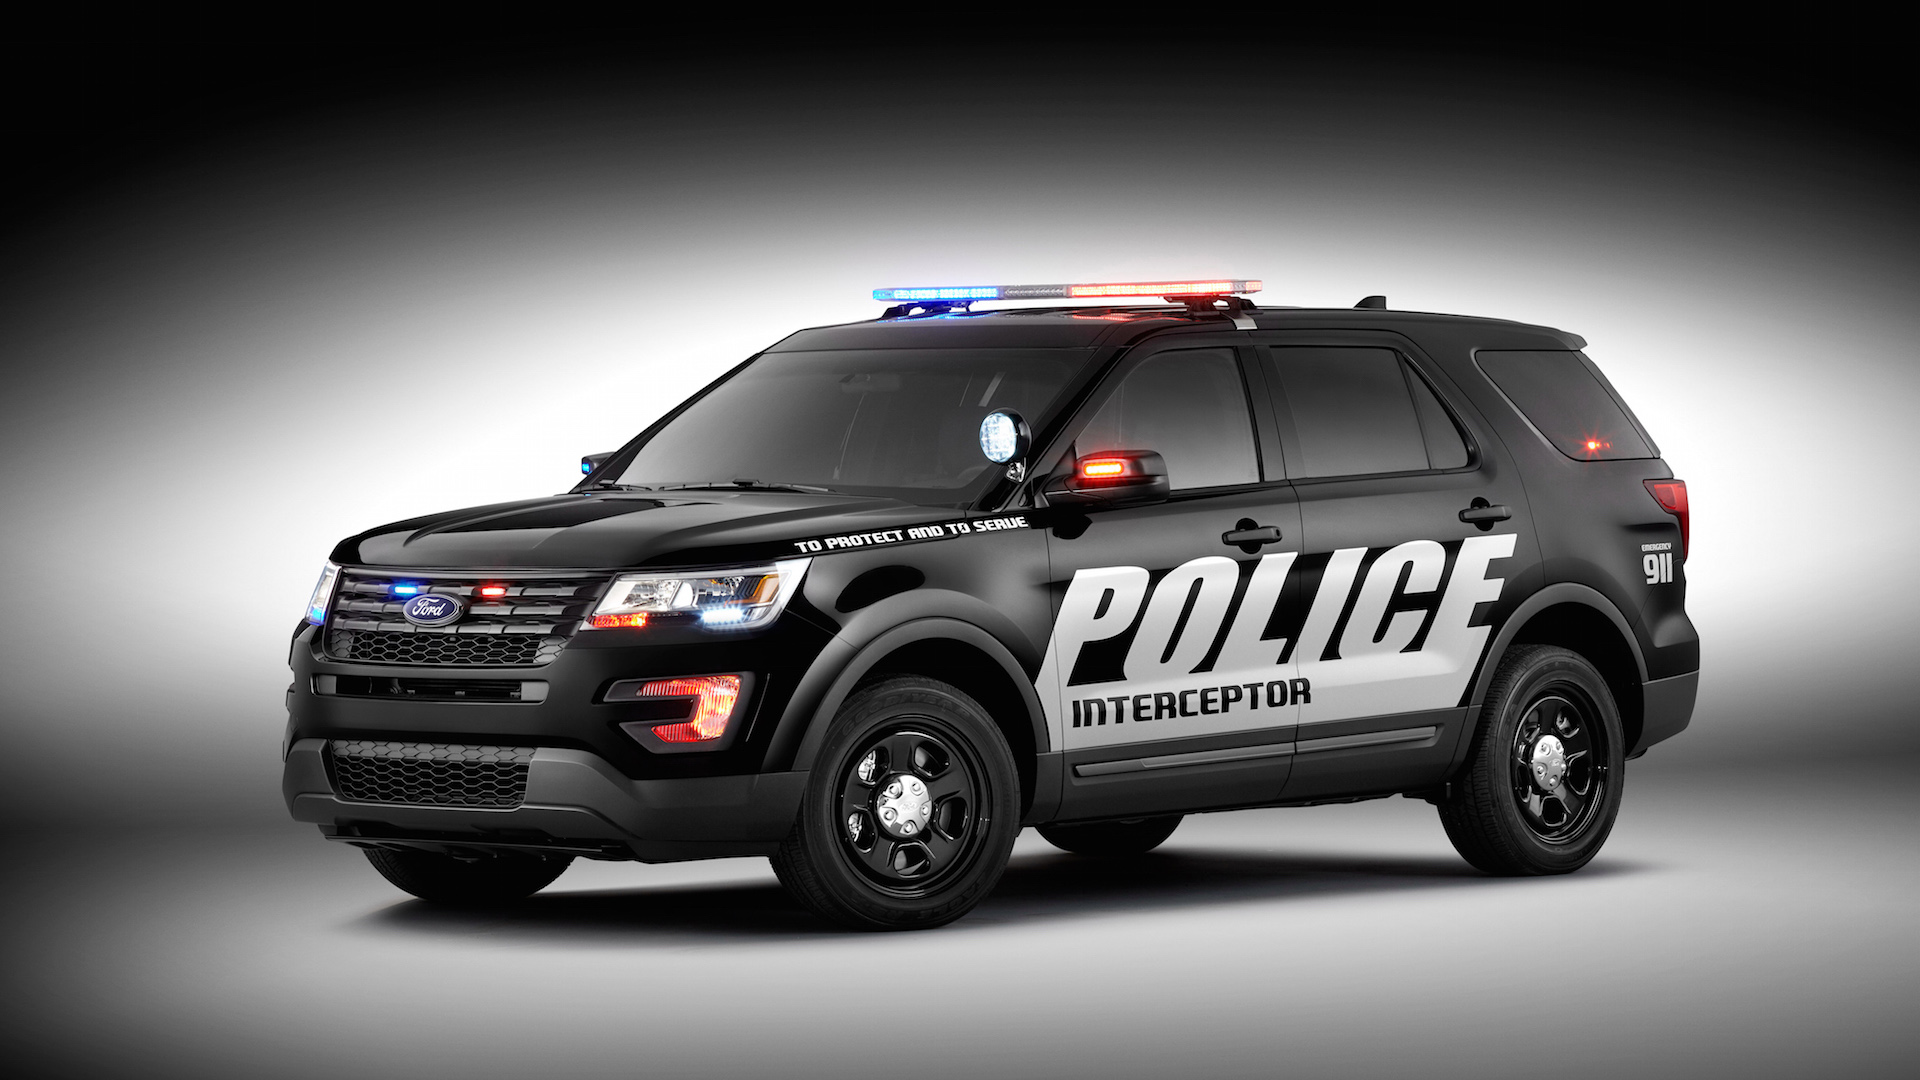 2016 ford police interceptor wallpaper hd car wallpapers id 5146. Black Bedroom Furniture Sets. Home Design Ideas